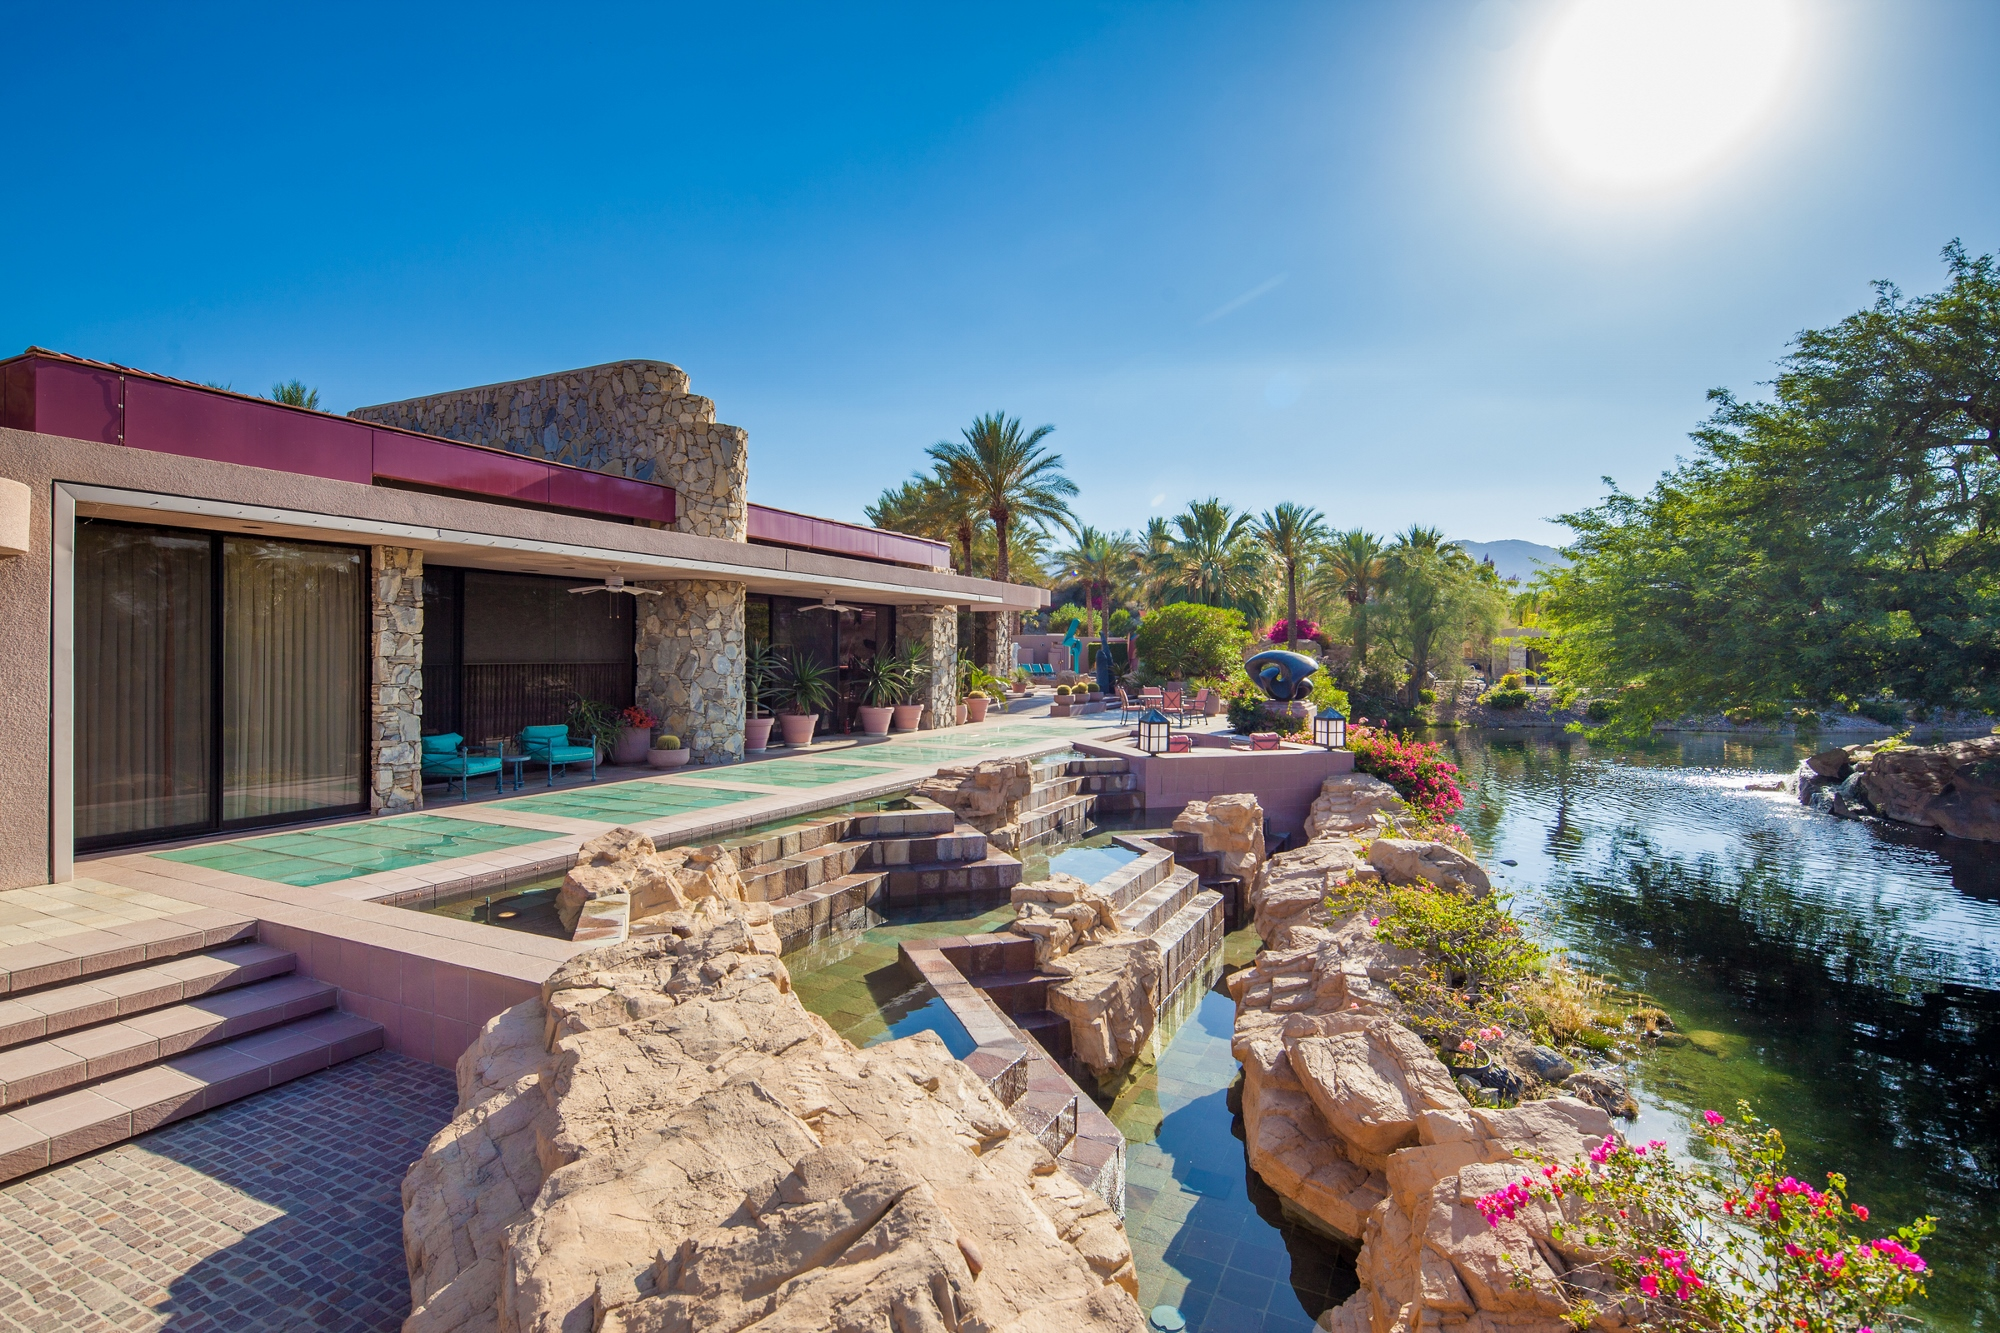 Additional photo for property listing at 74380 Palo Verde Drive  Indian Wells, Калифорния 92210 Соединенные Штаты